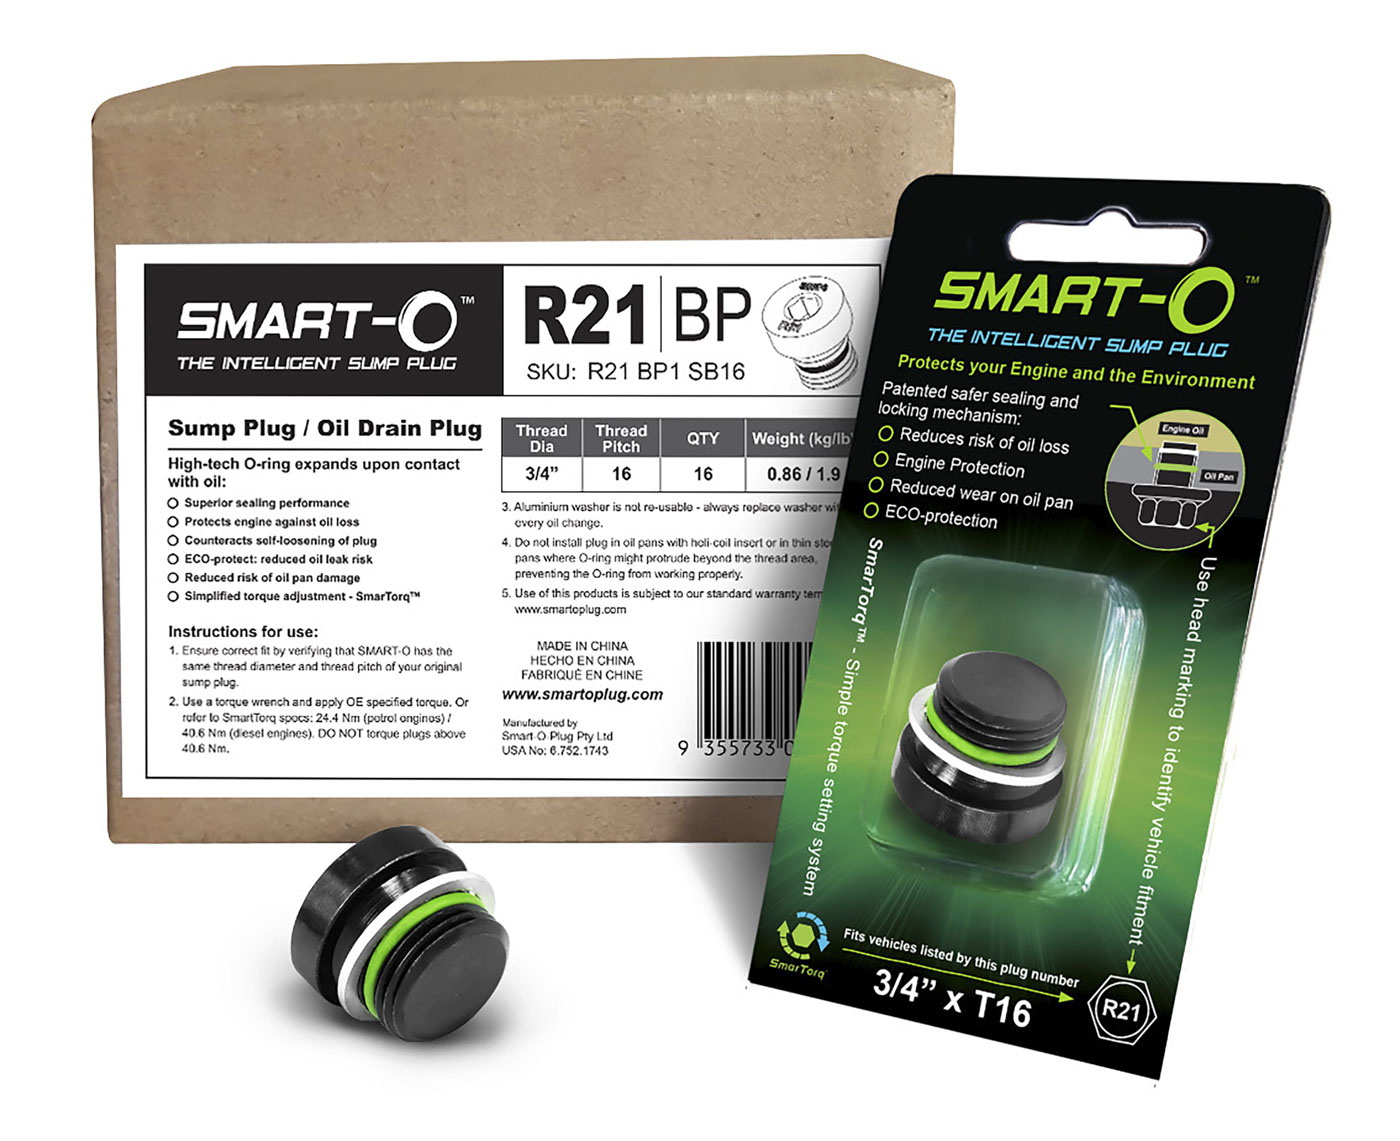 SMART-O Replenishment Box of 16 x R21BP1 Sump Plugs